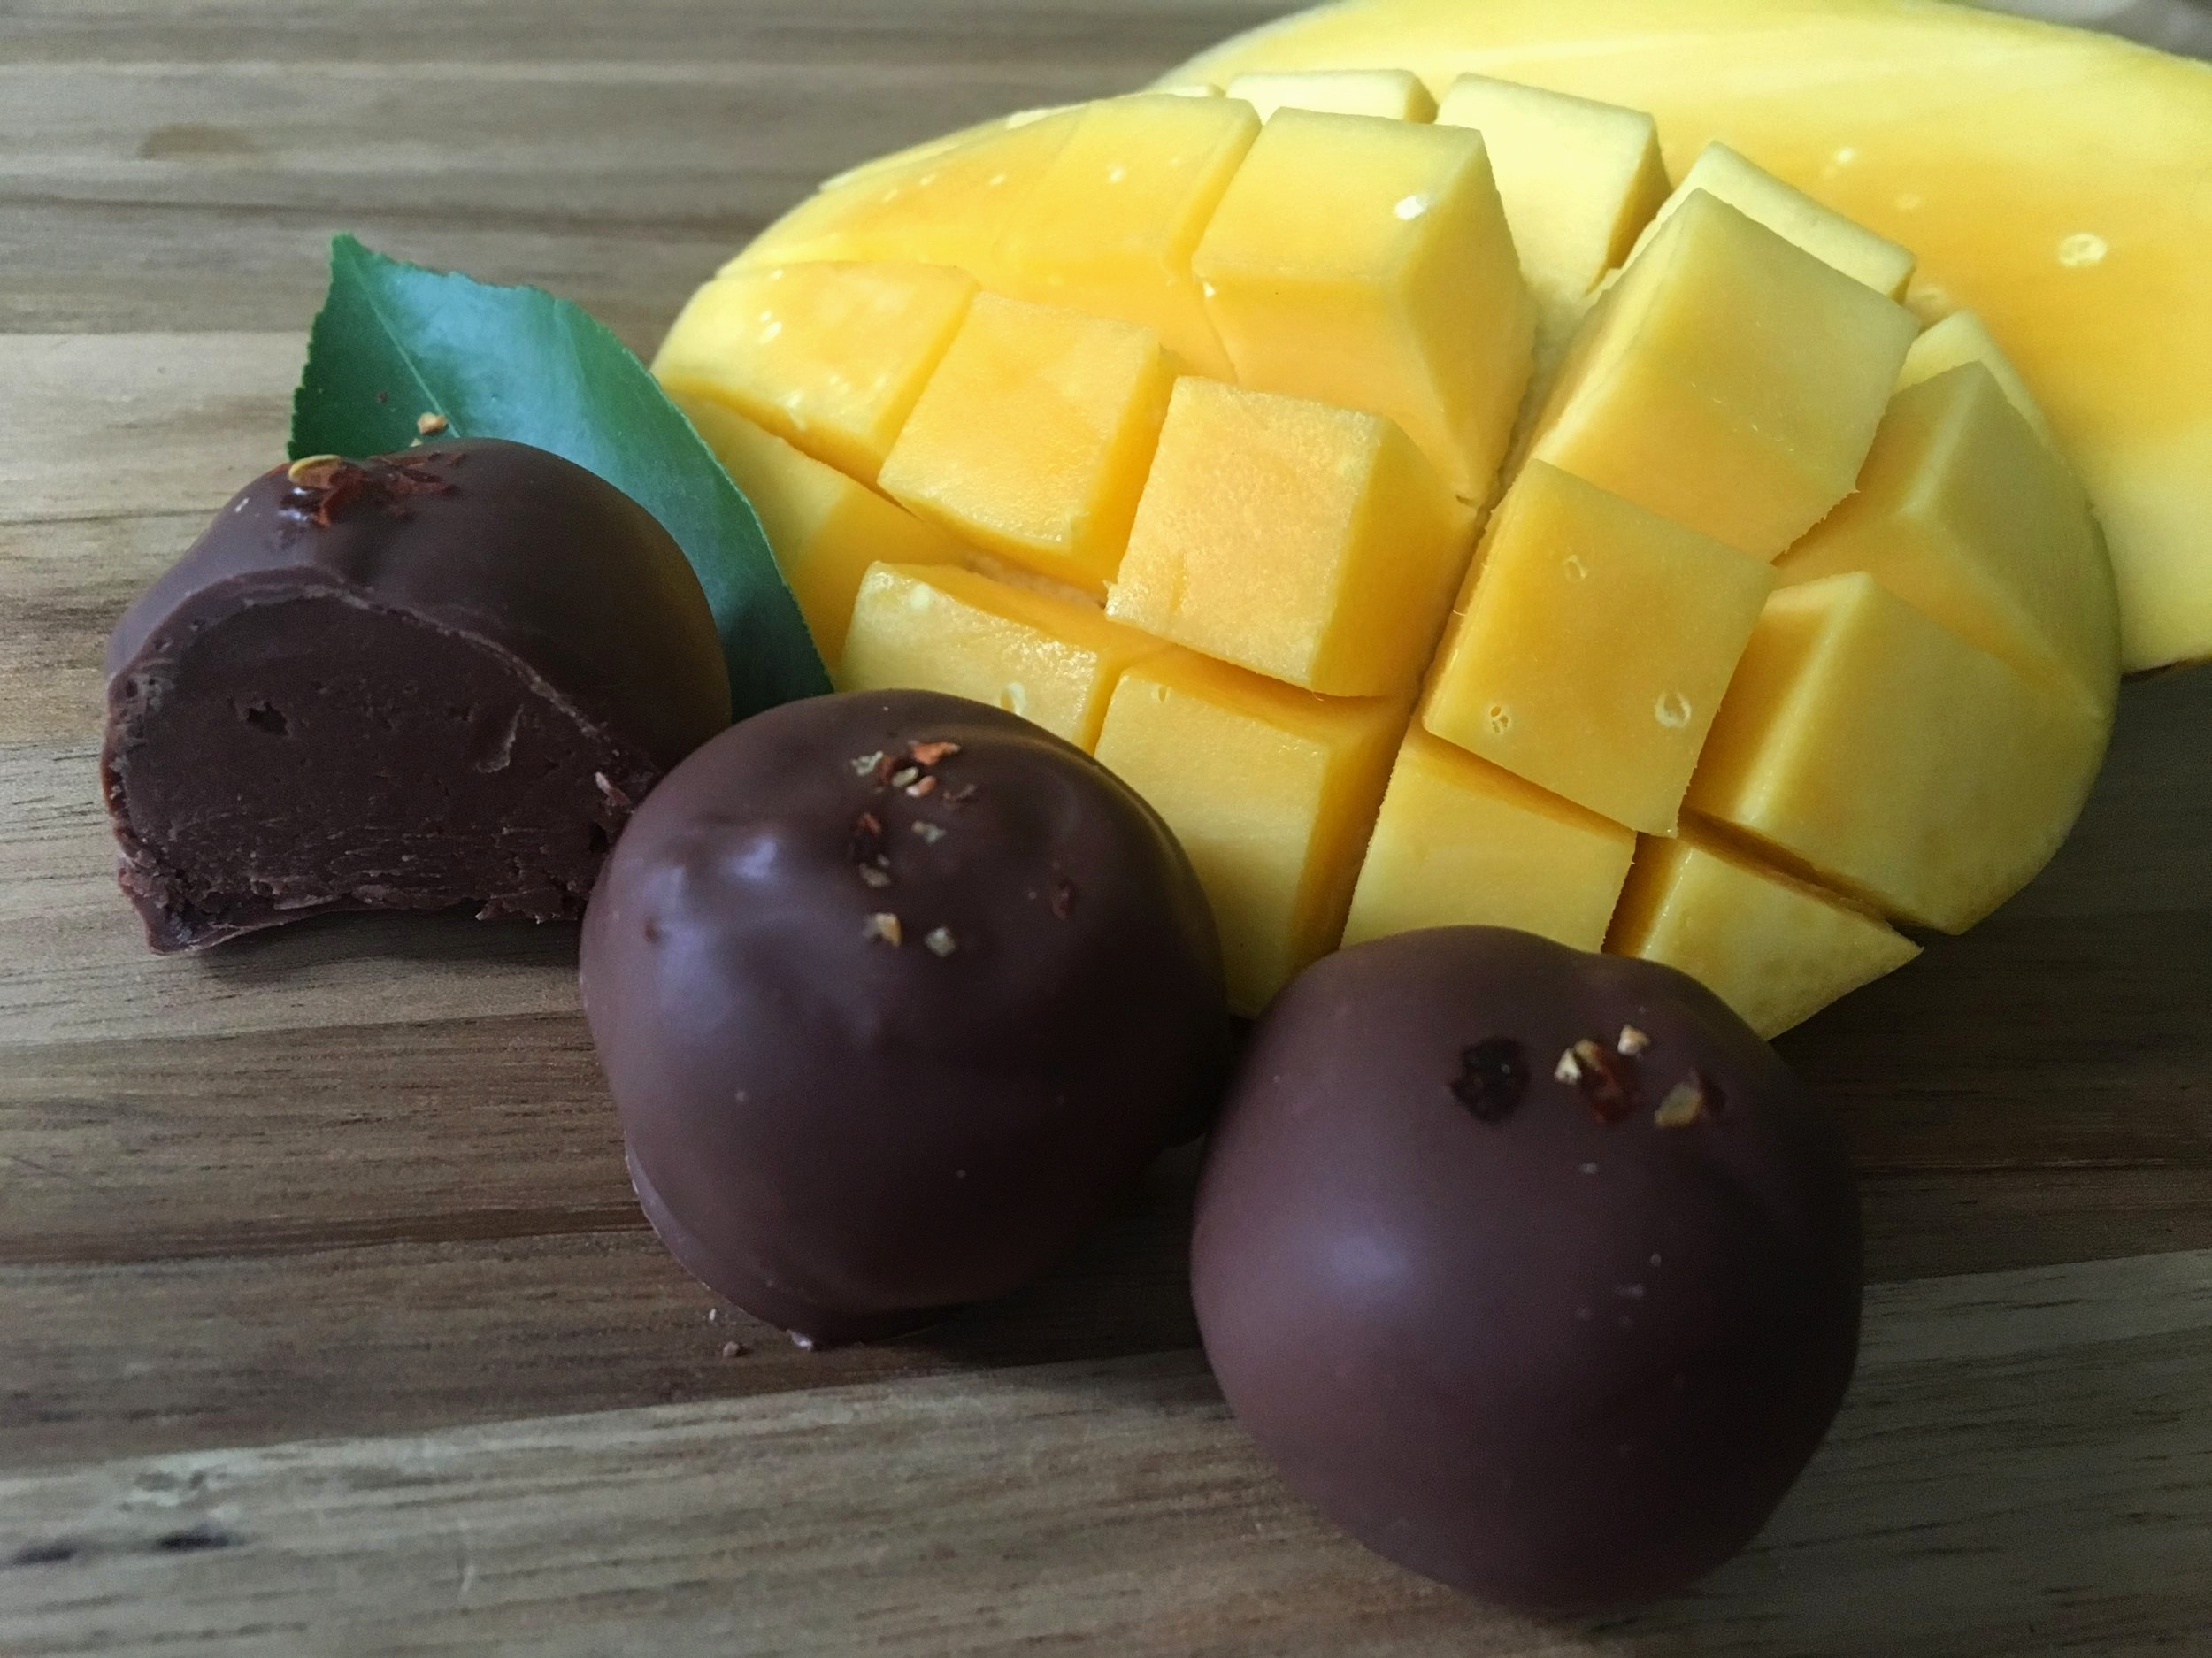 Mango - SEASONAL FLAVOR Available in Spring. Real mango blended in ganache dipped in milk chocolate and finished with a touch of chili pepper on top.